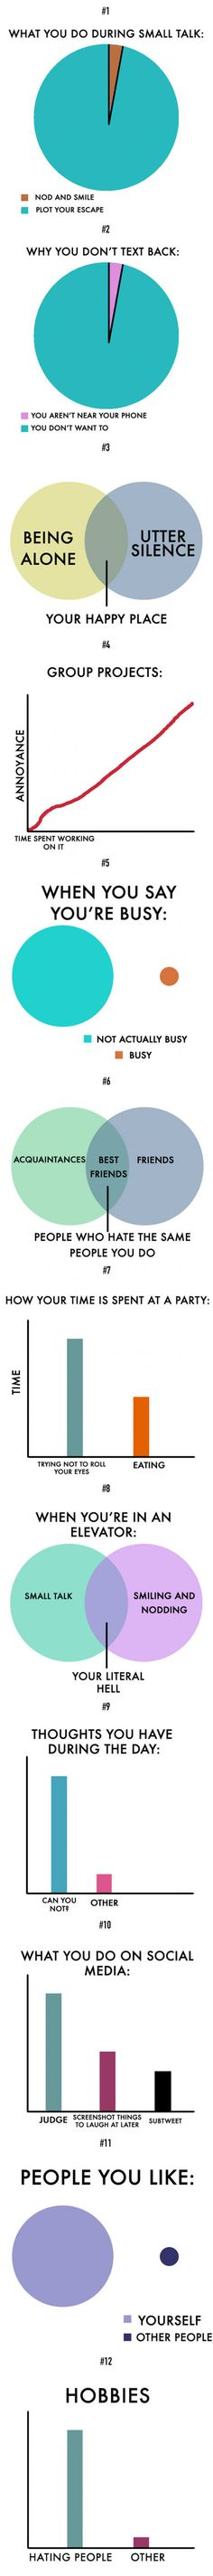 12 Brutally Honest Charts That People Who Hate People Will Understand